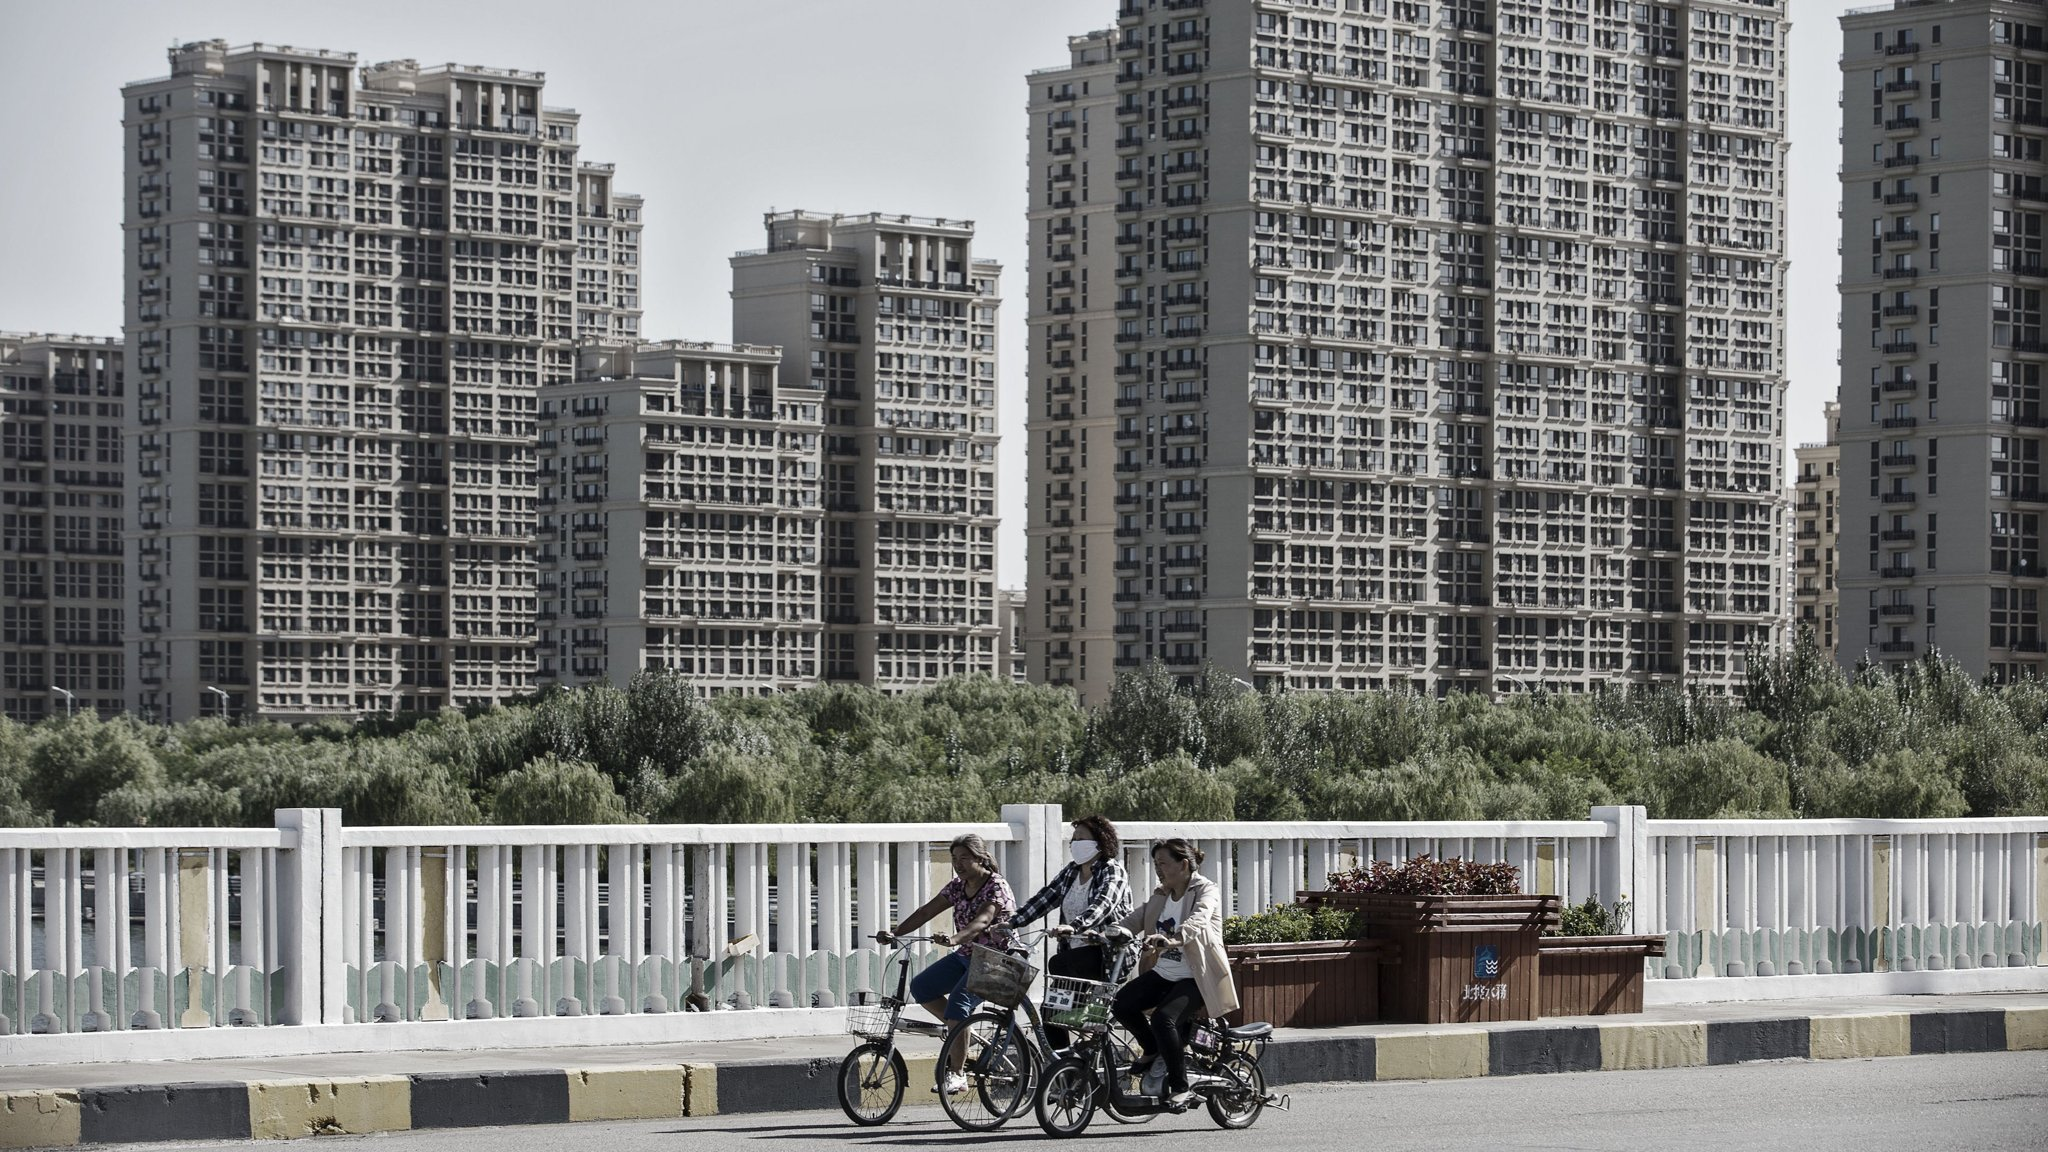 China infrastructure projects fall foul of debt concerns